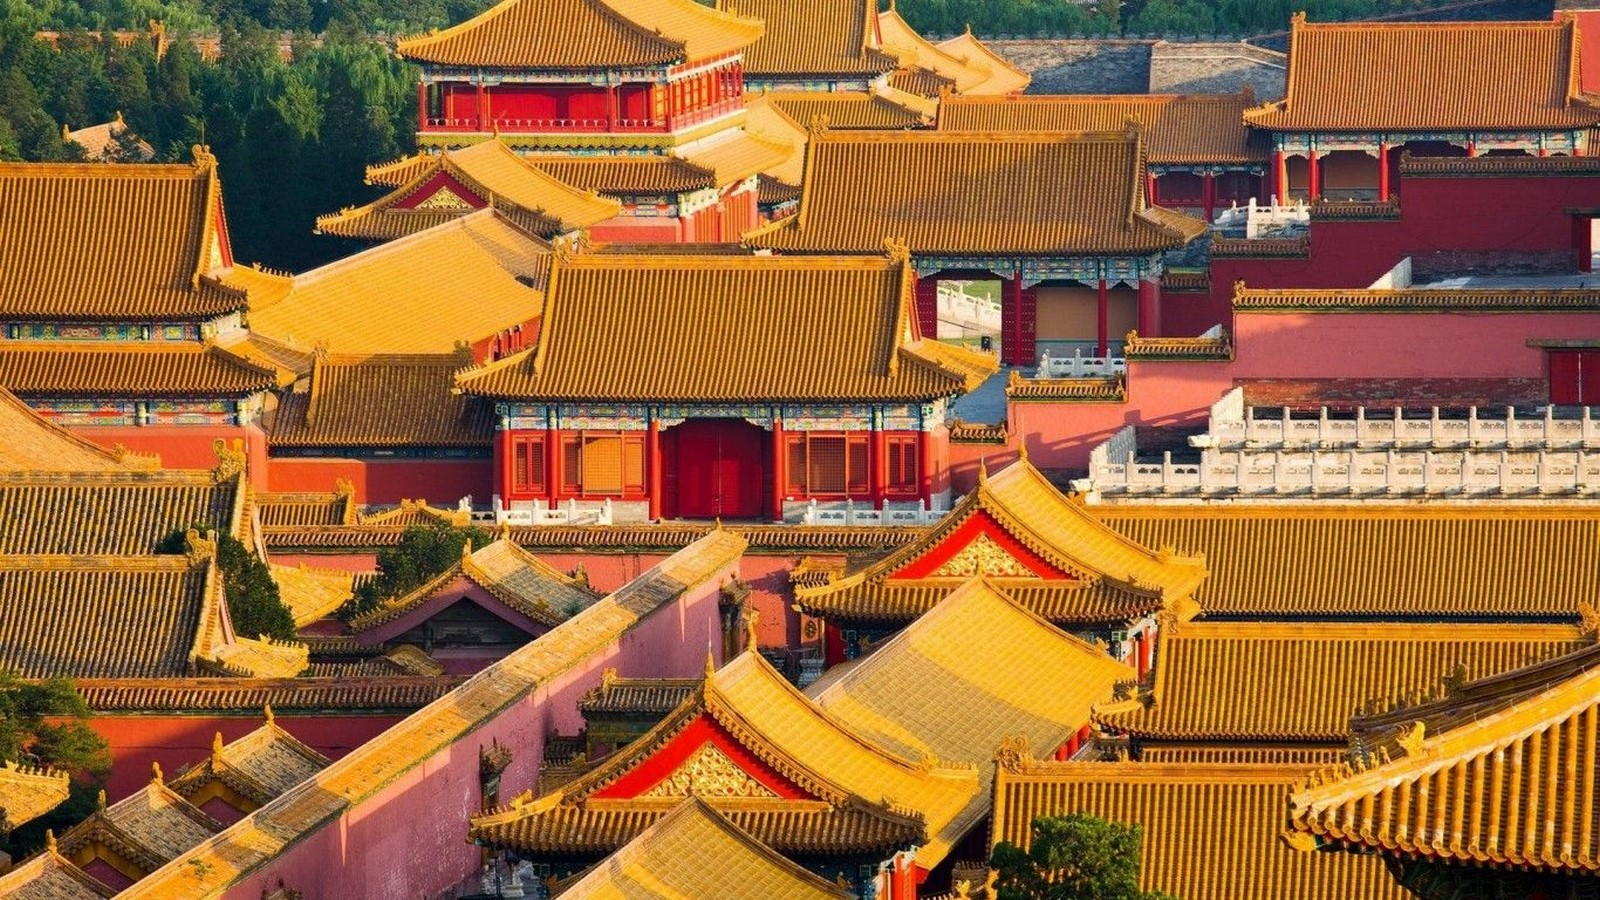 10 Things you didn't know about Forbidden City, Beijing - Sheet8